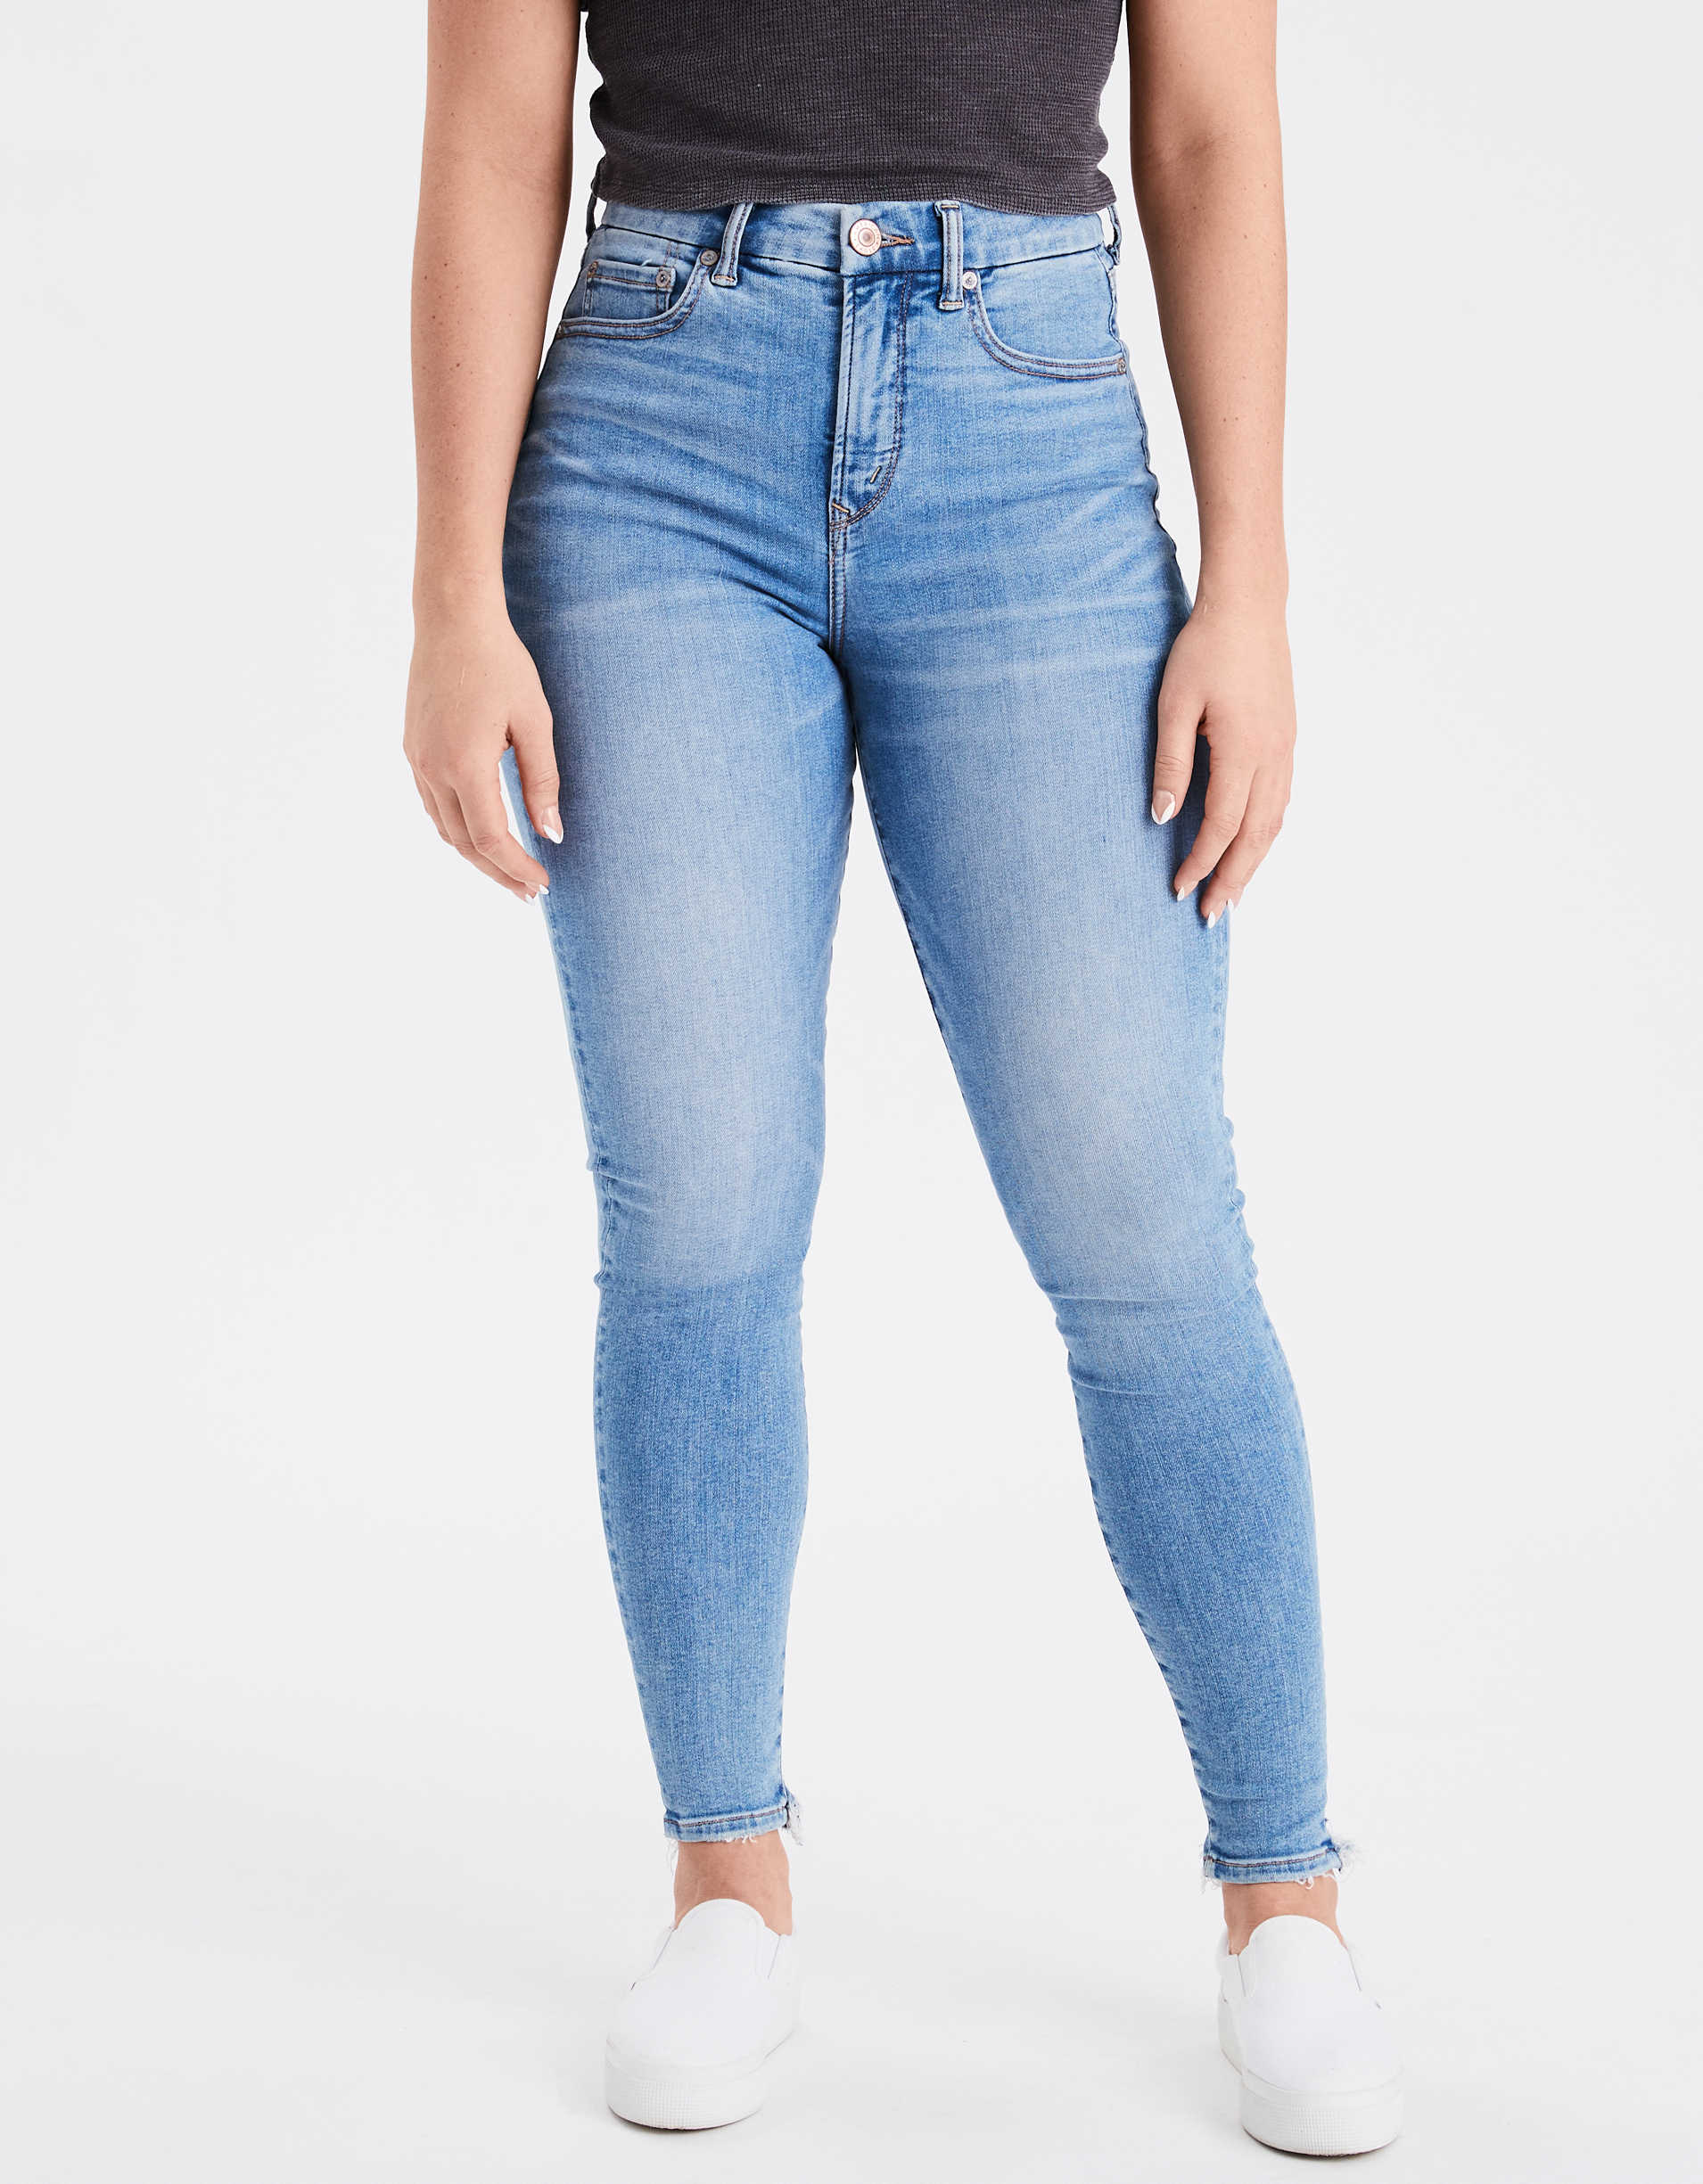 The Lu(x)e Jean Curvy High-Waisted Jegging